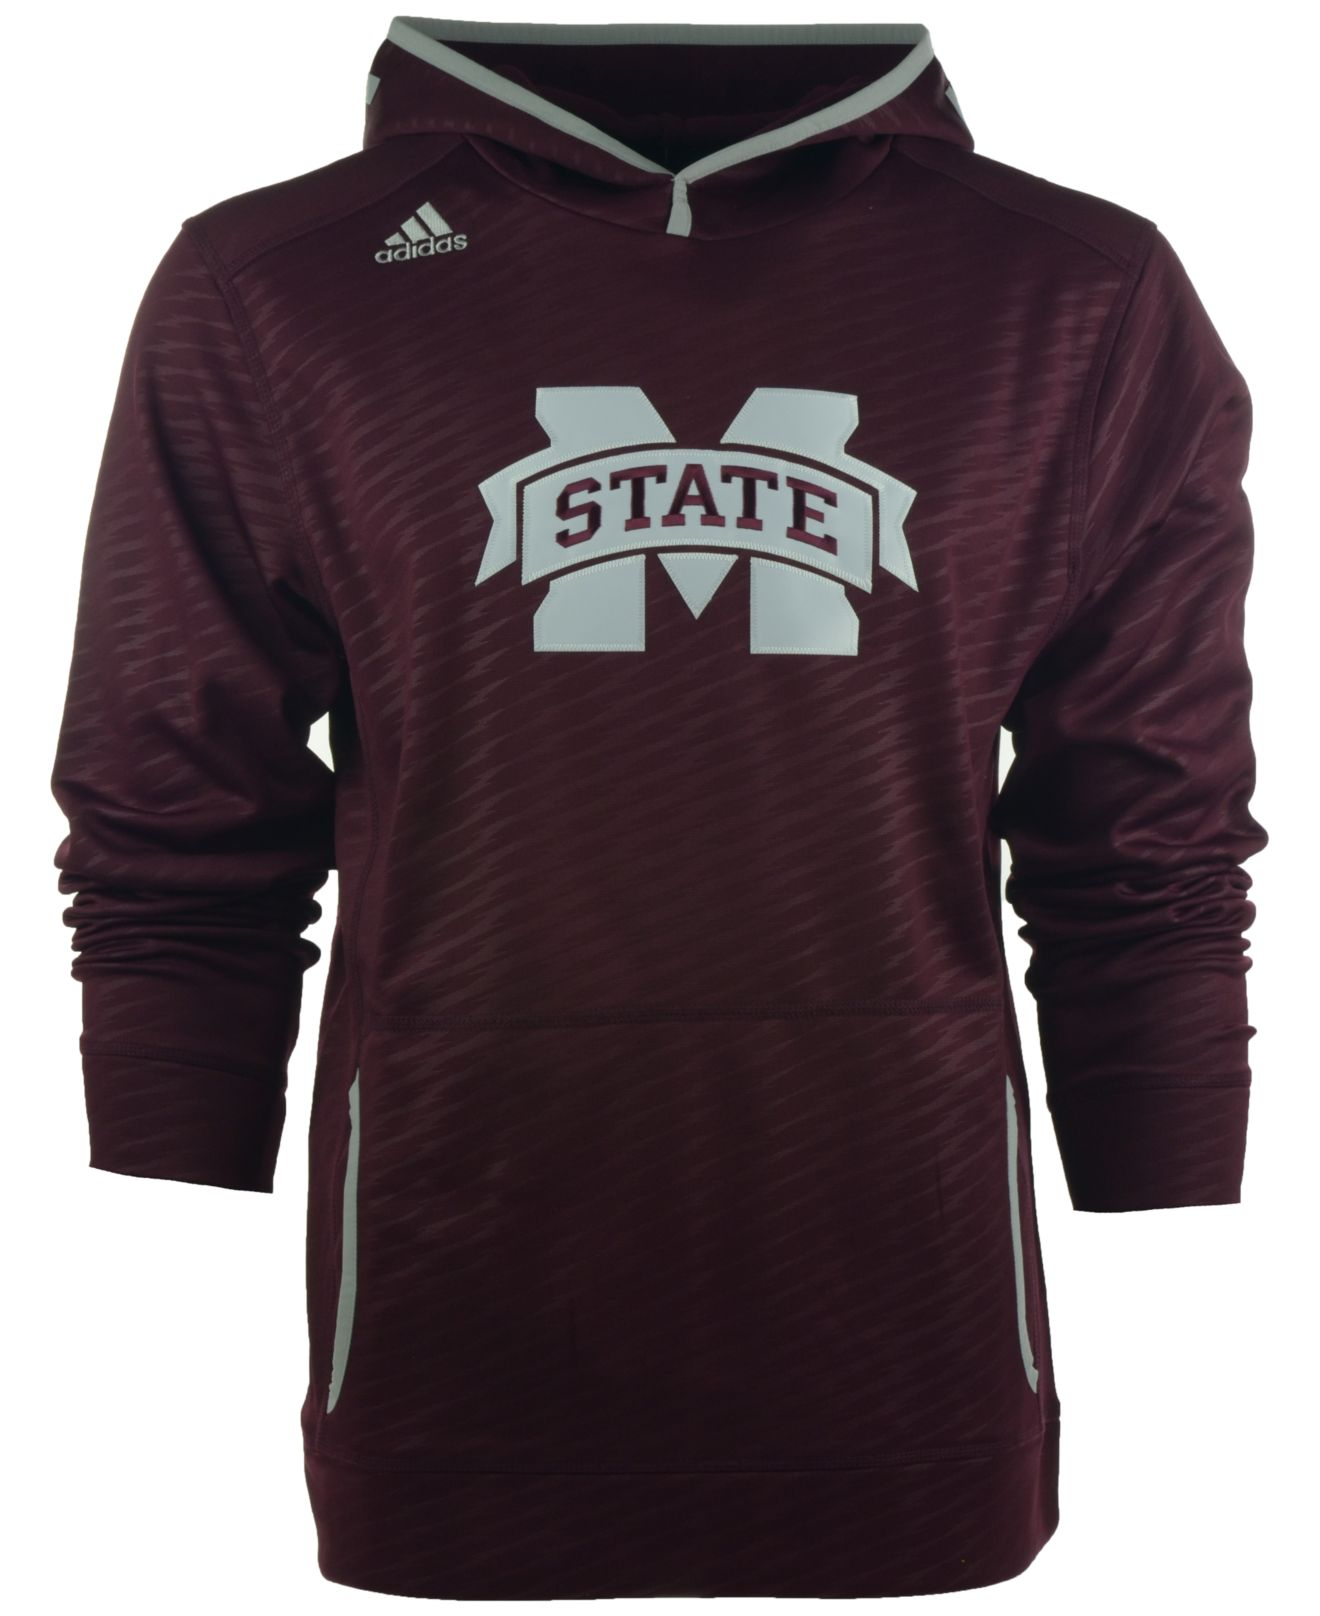 Lyst - Adidas Menu0026#39;S Mississippi State Bulldogs Hoodie in Purple for Men